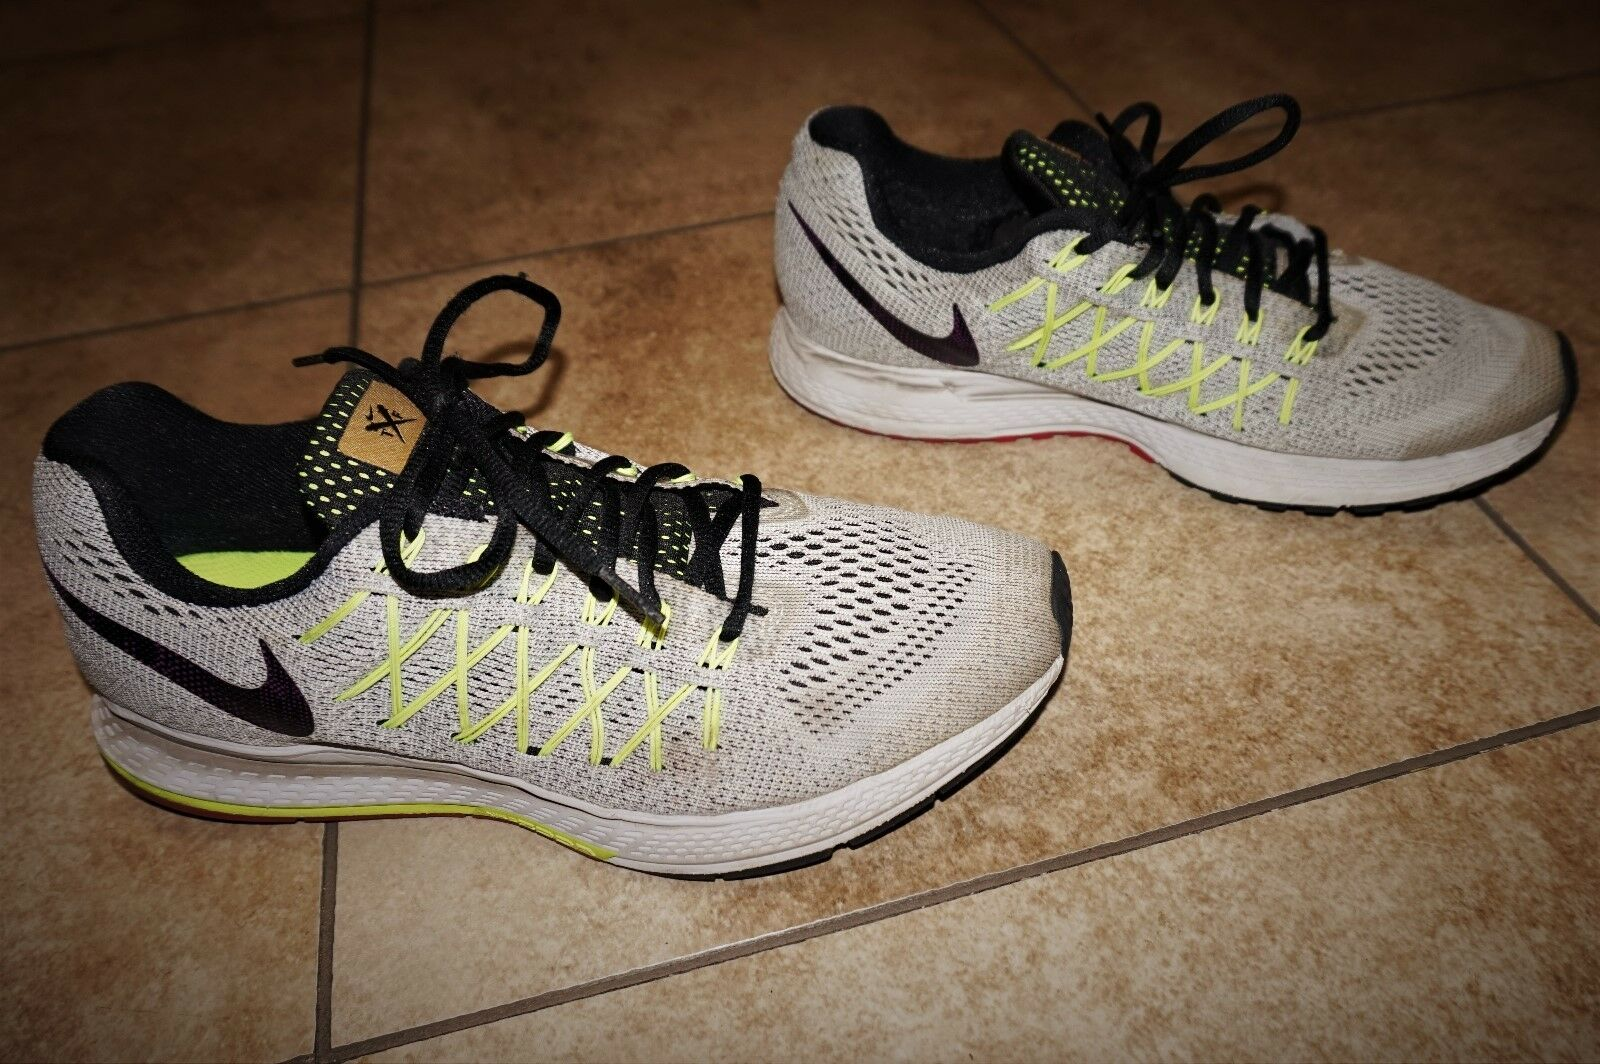 Nike Mens Zoom Pegasus 32 Running Cross Training Walking Shoes Size 10.5